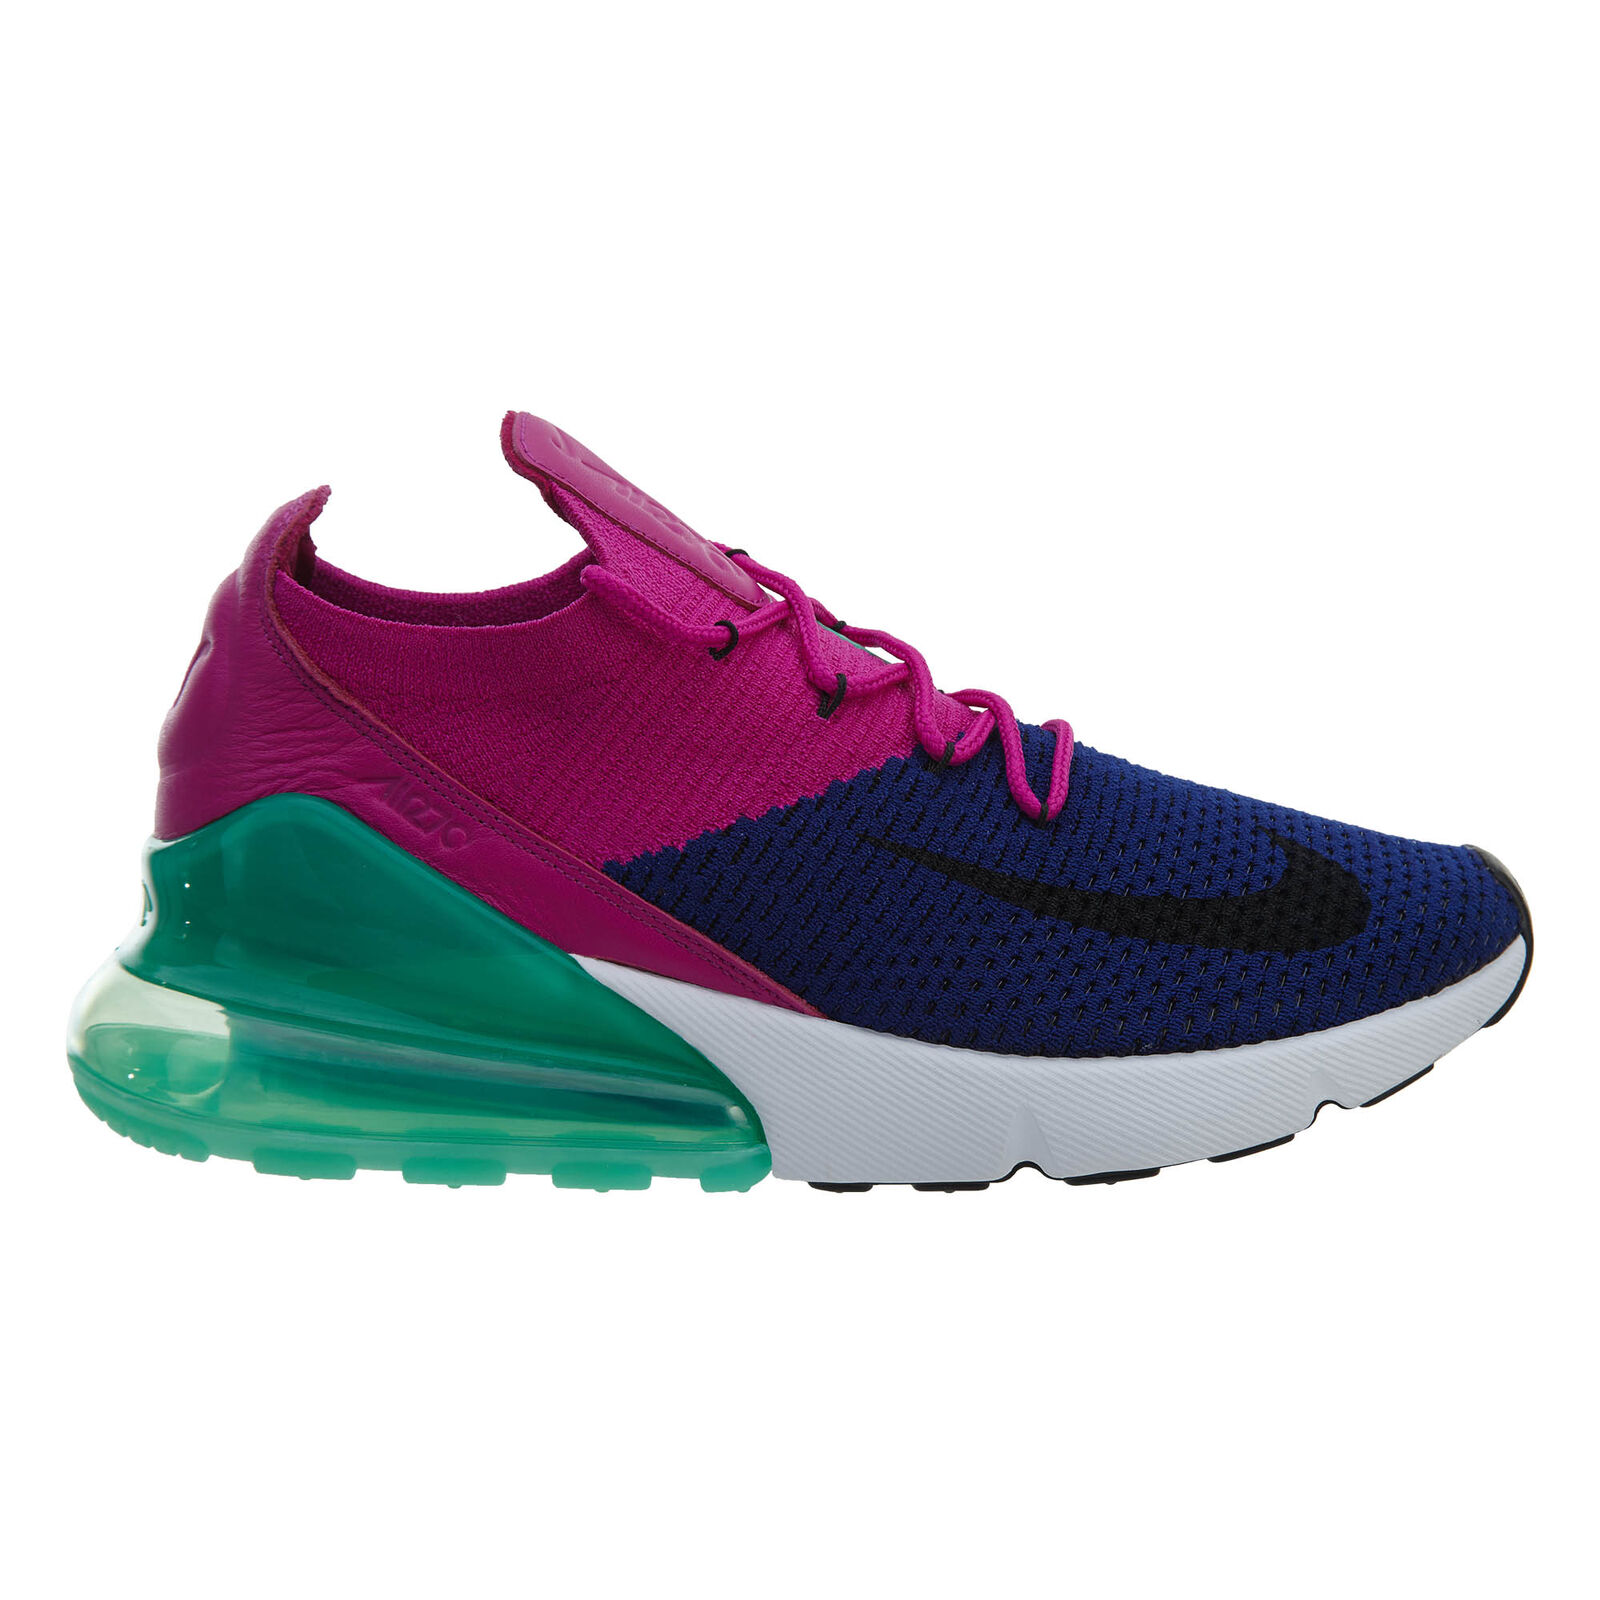 premium selection c576b d741a Nike Nike Nike Air Max 270 Flyknit Mens AO1023-401 Royal Fuchsia Running  Shoes Size